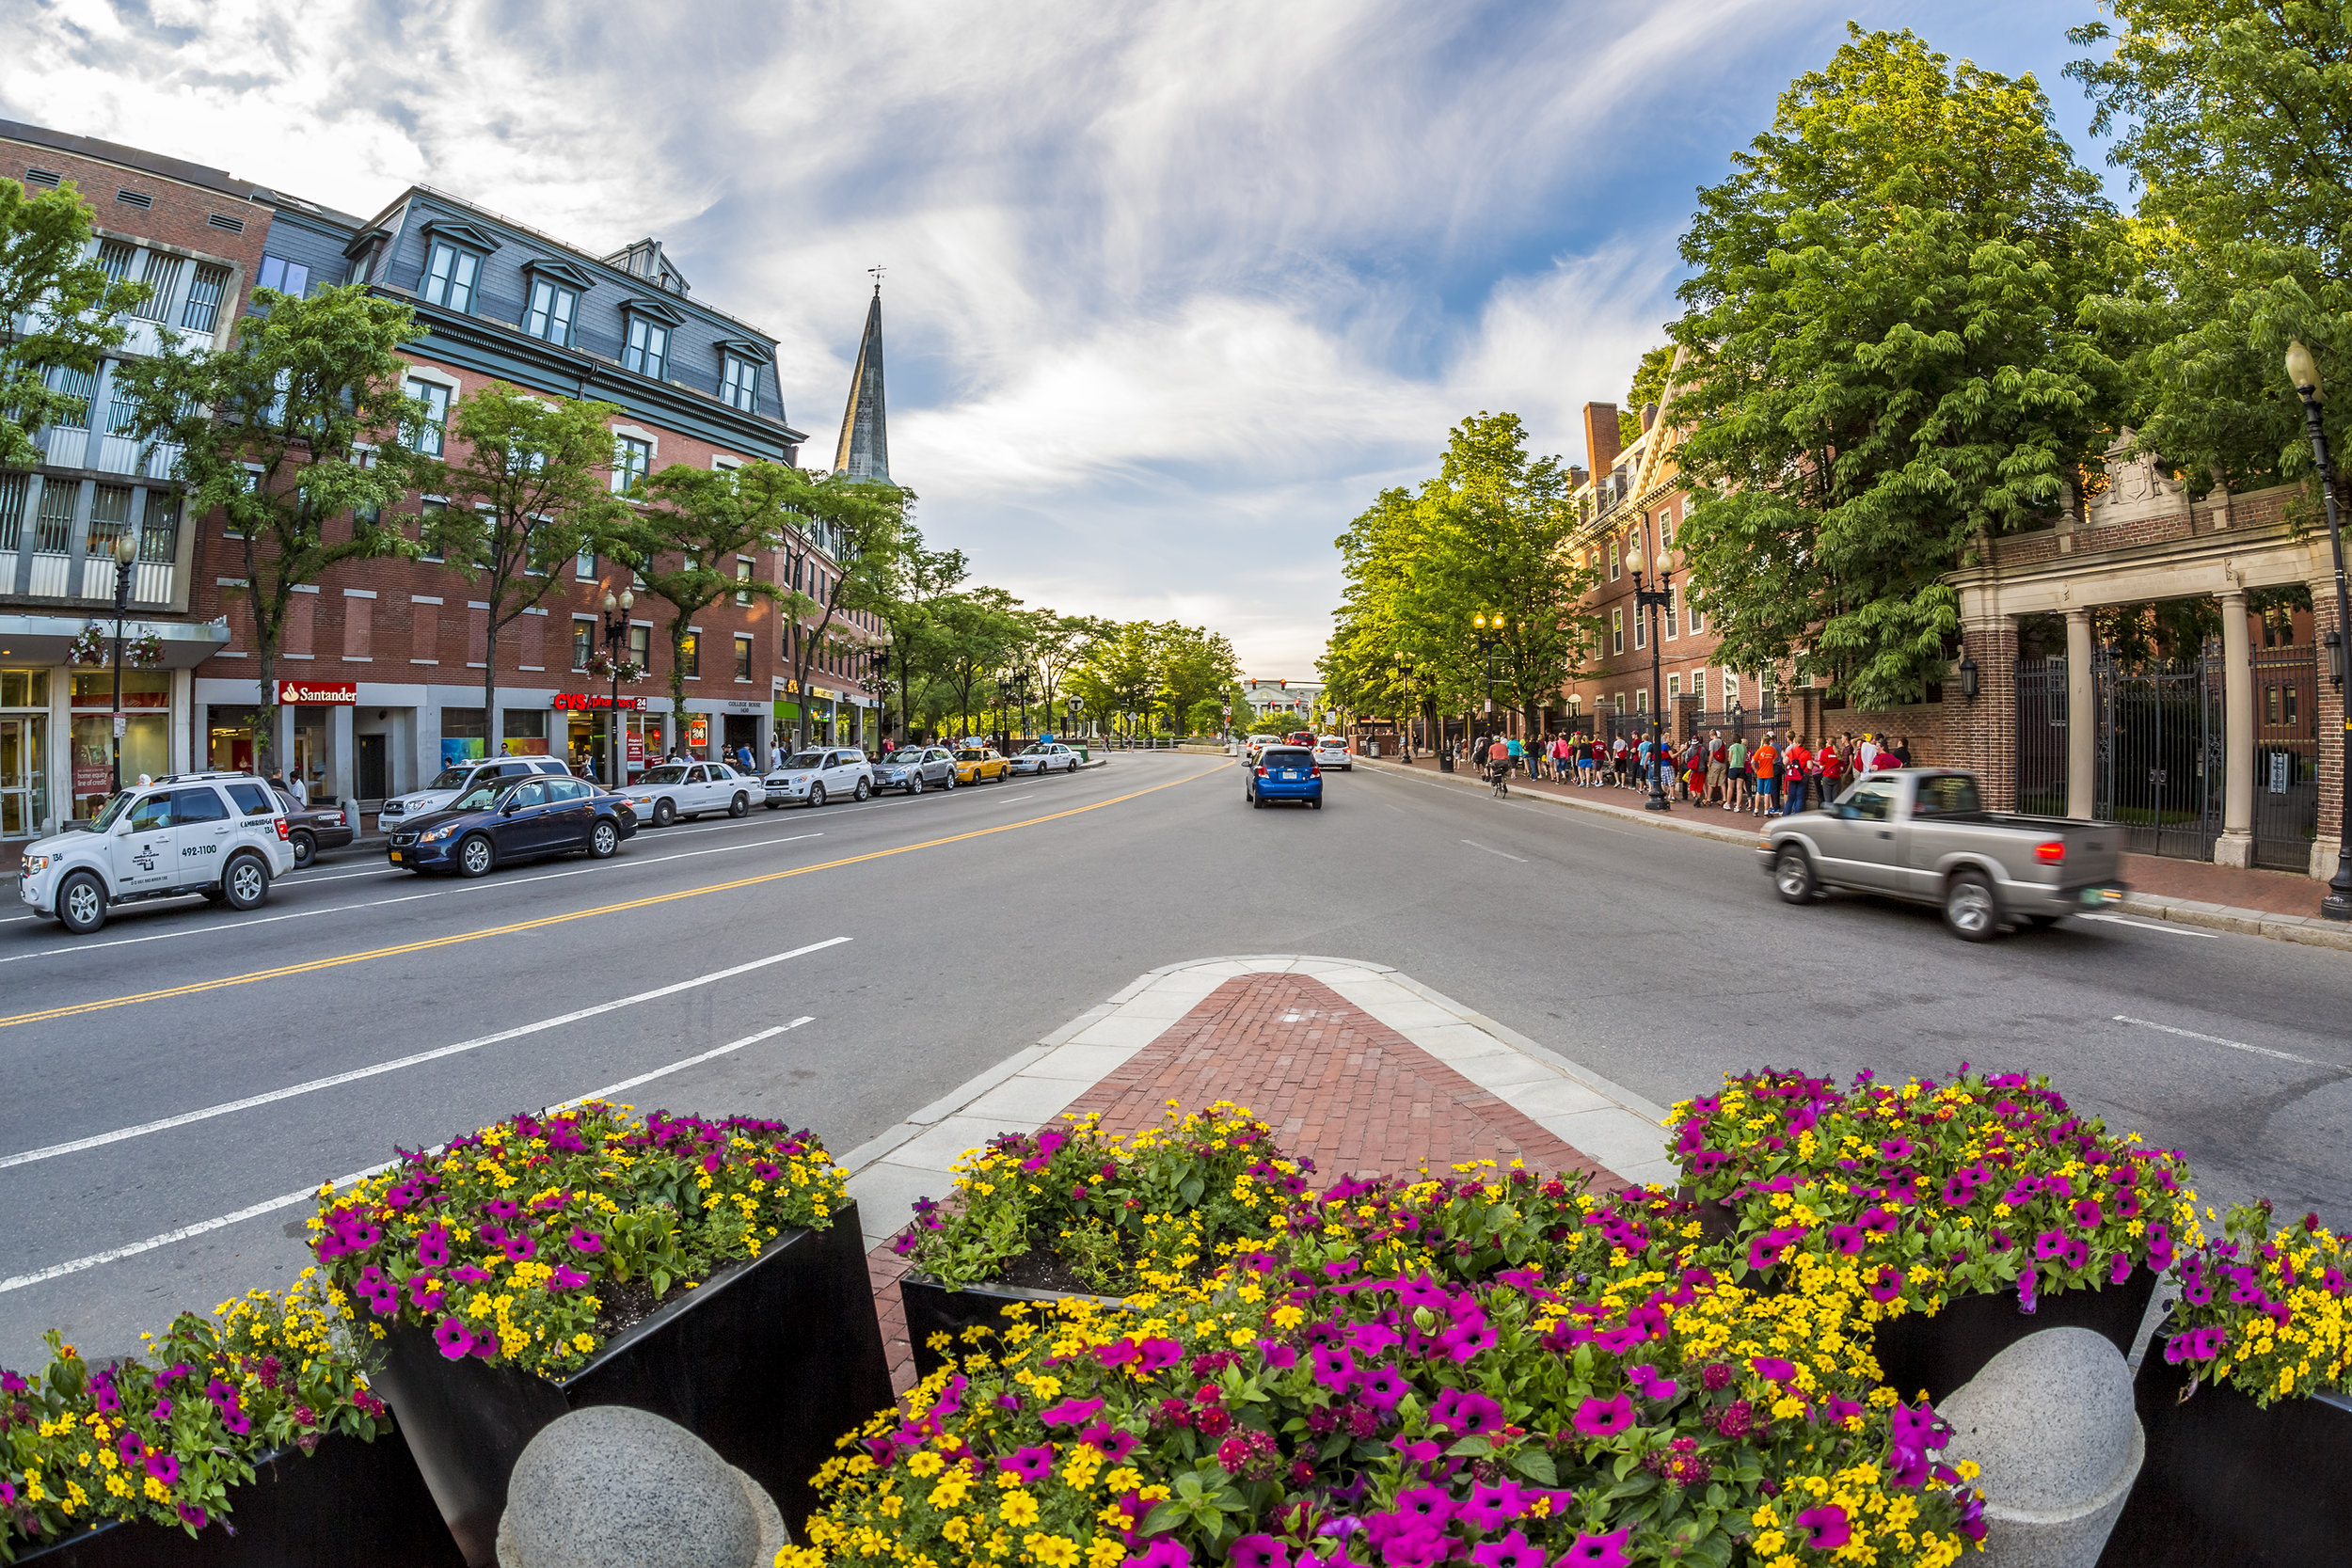 221 Mount Auburn stock photo harvard square.jpg